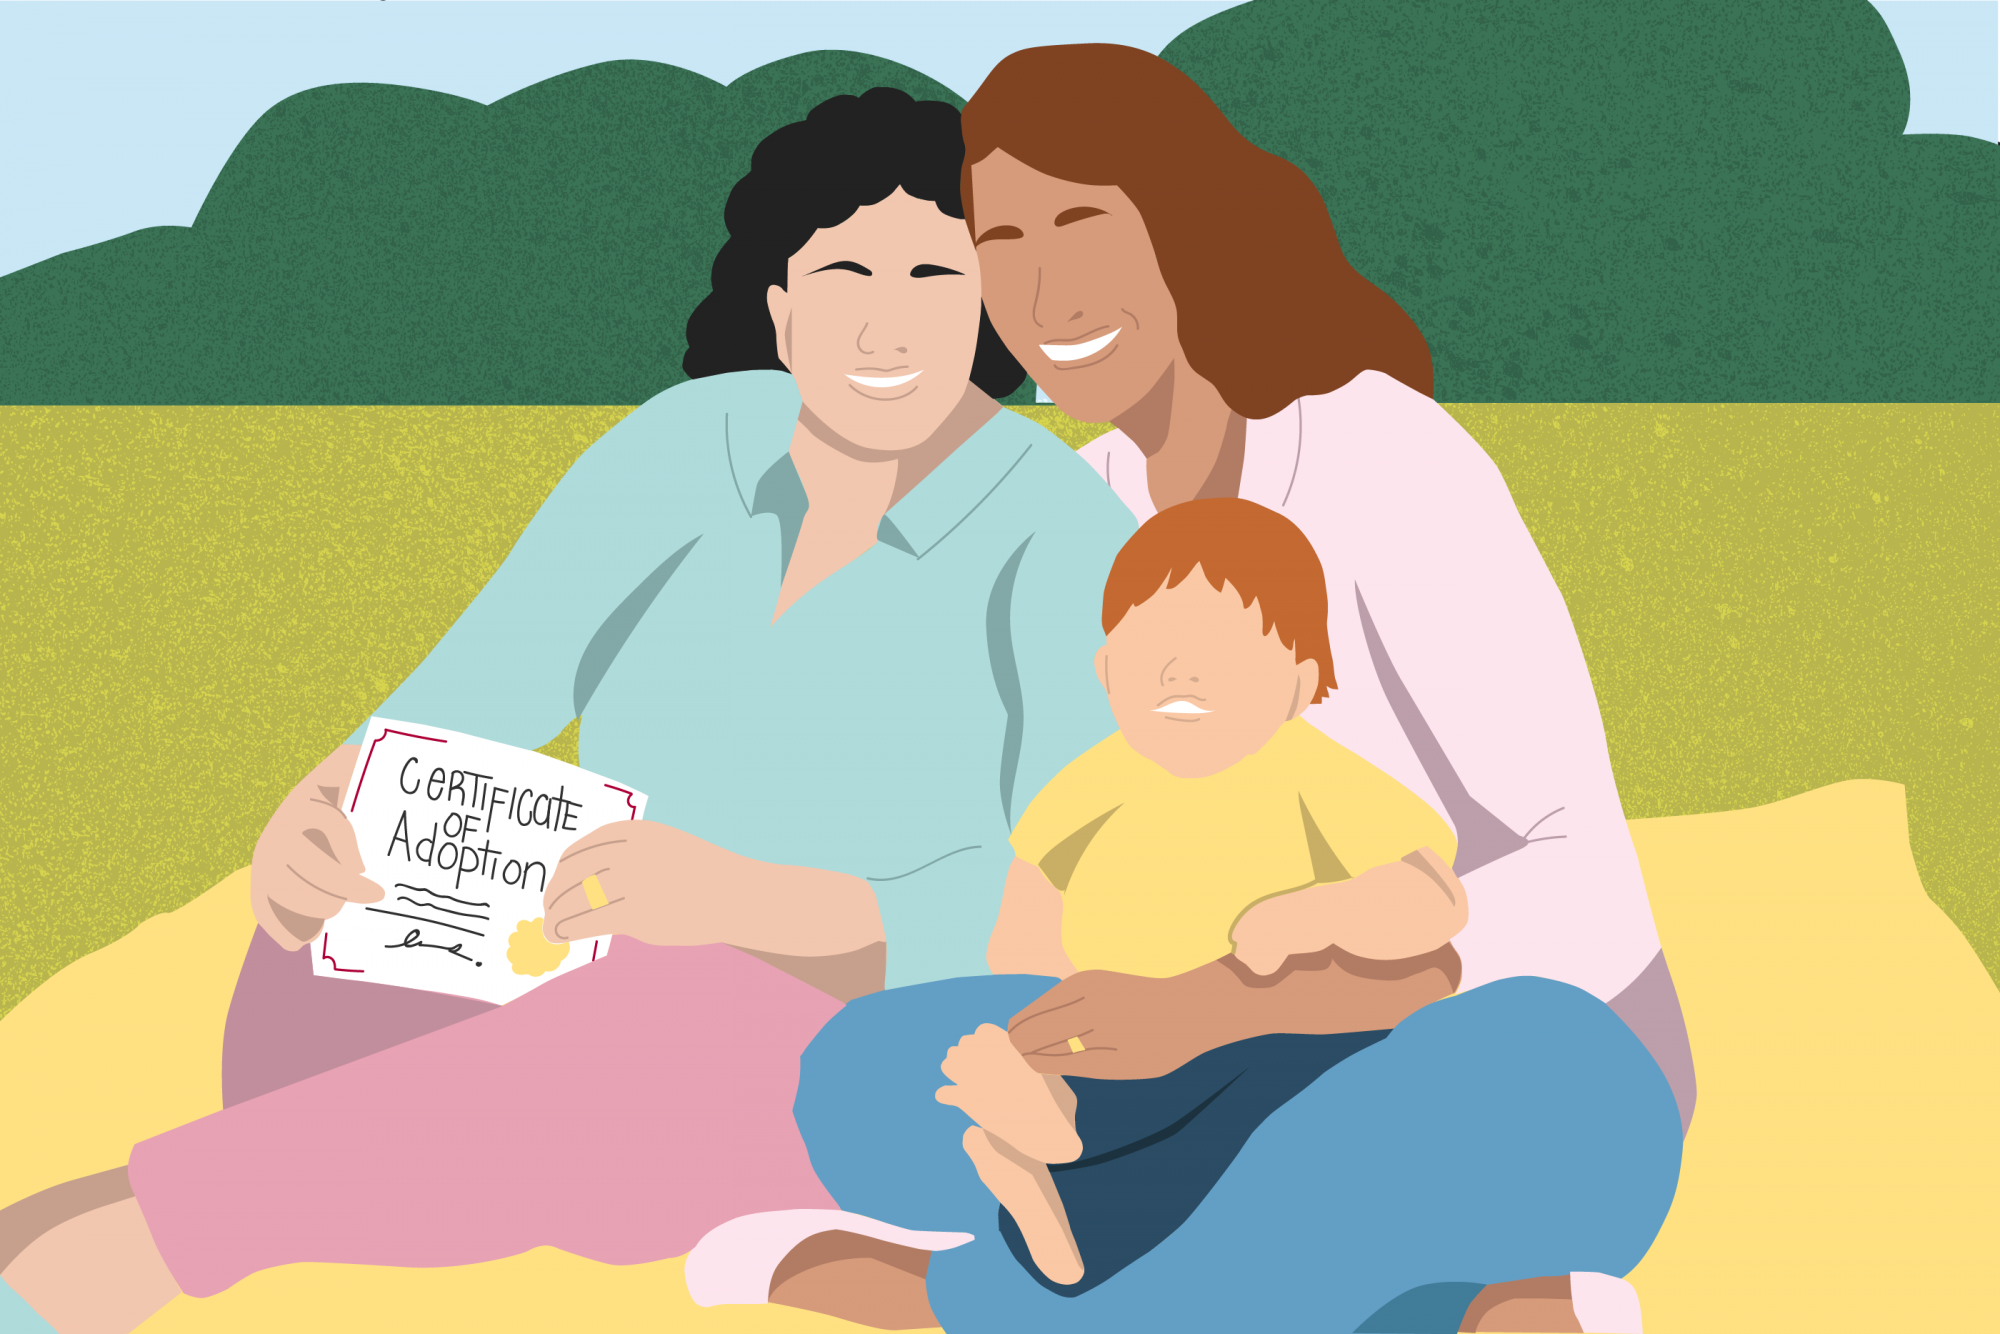 NonBio Second Parent Adoption Illustration